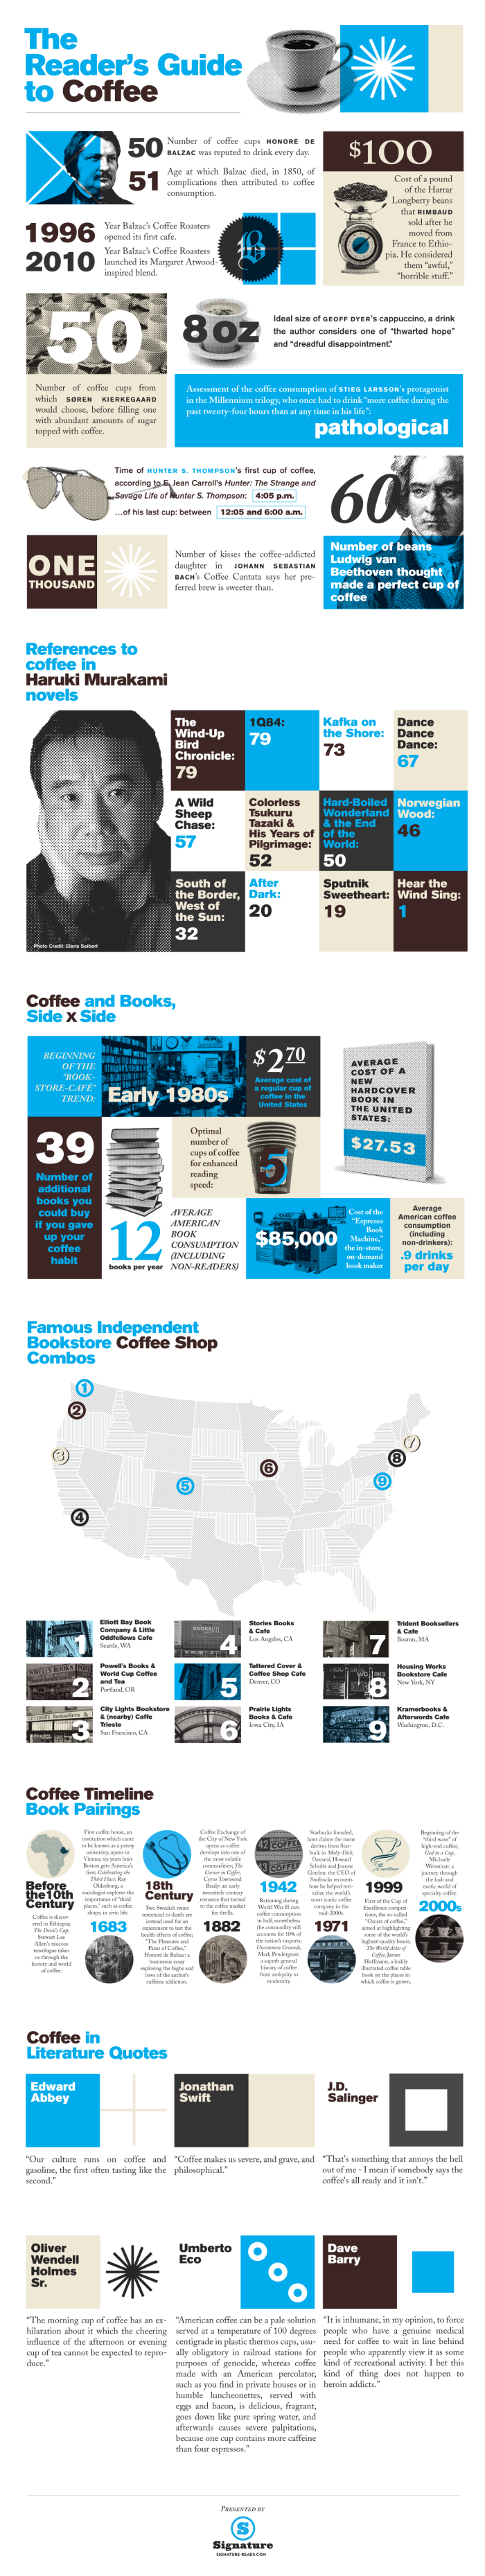 Book-Lovers-Guide-to-Coffee-Infographic